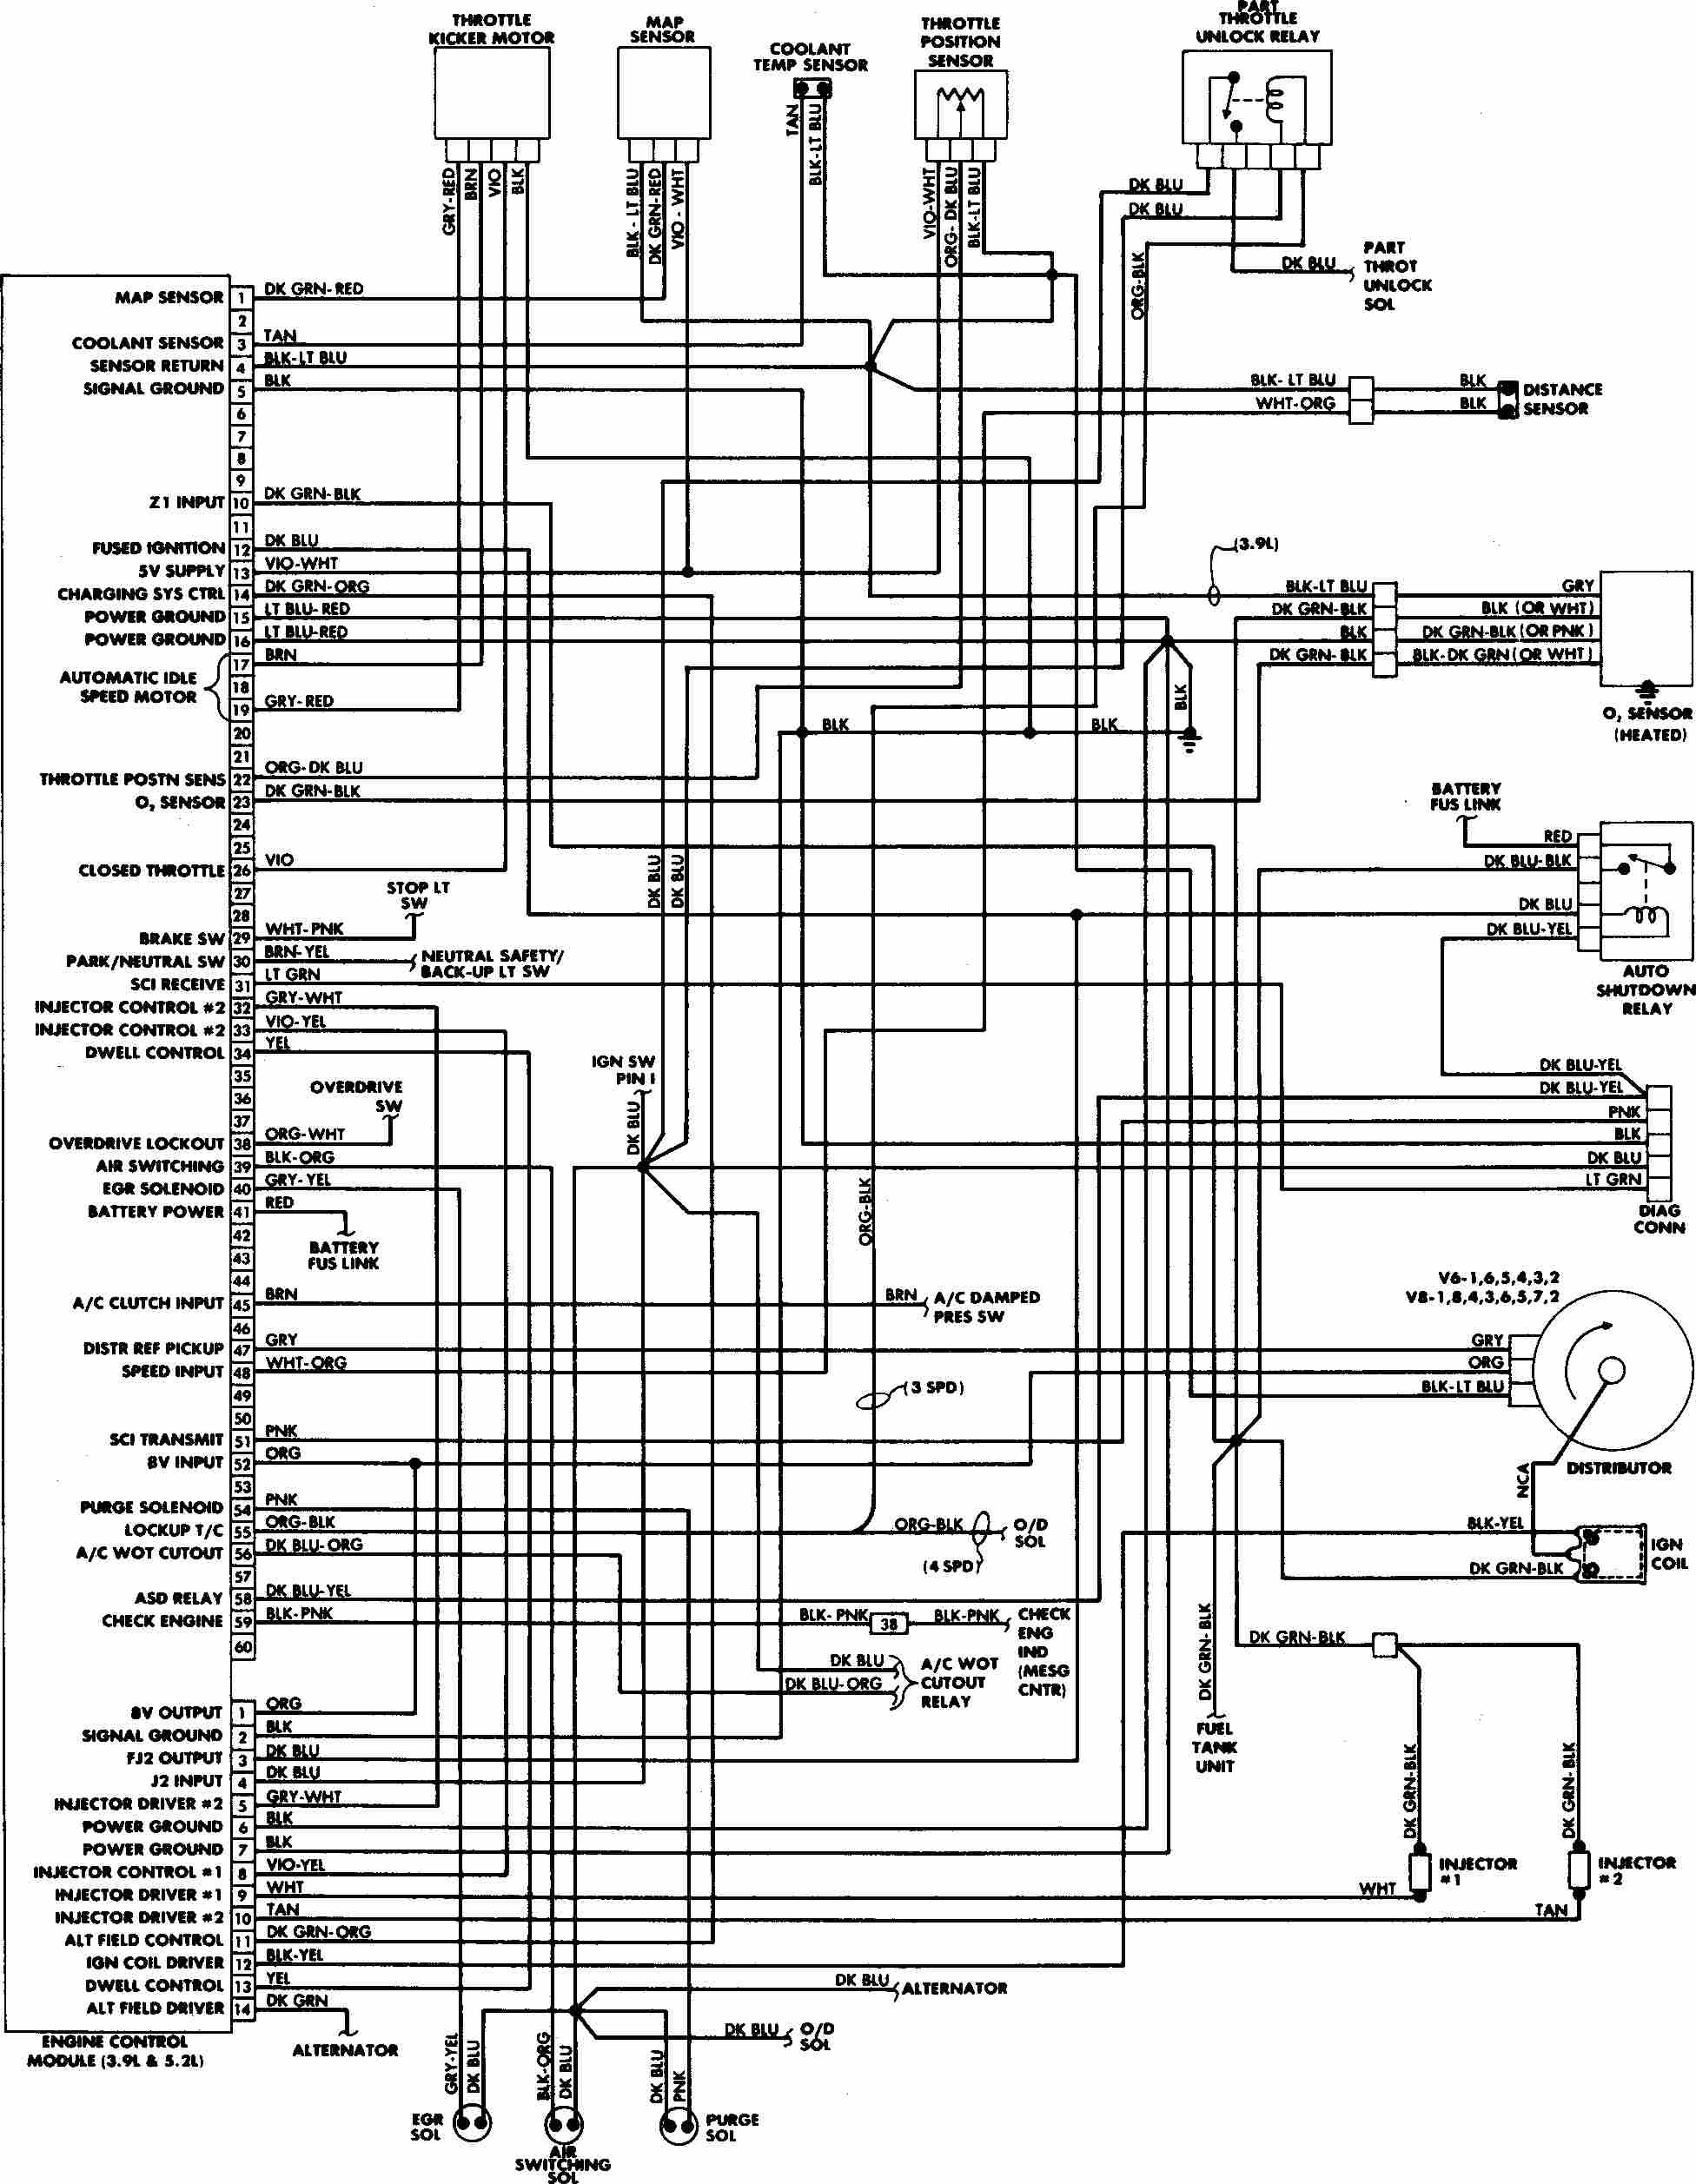 1976 Chevy Truck Wiring Diagram 76 Corvette Radiator Diagram 76 Get Free  Image About Wiring Diagram